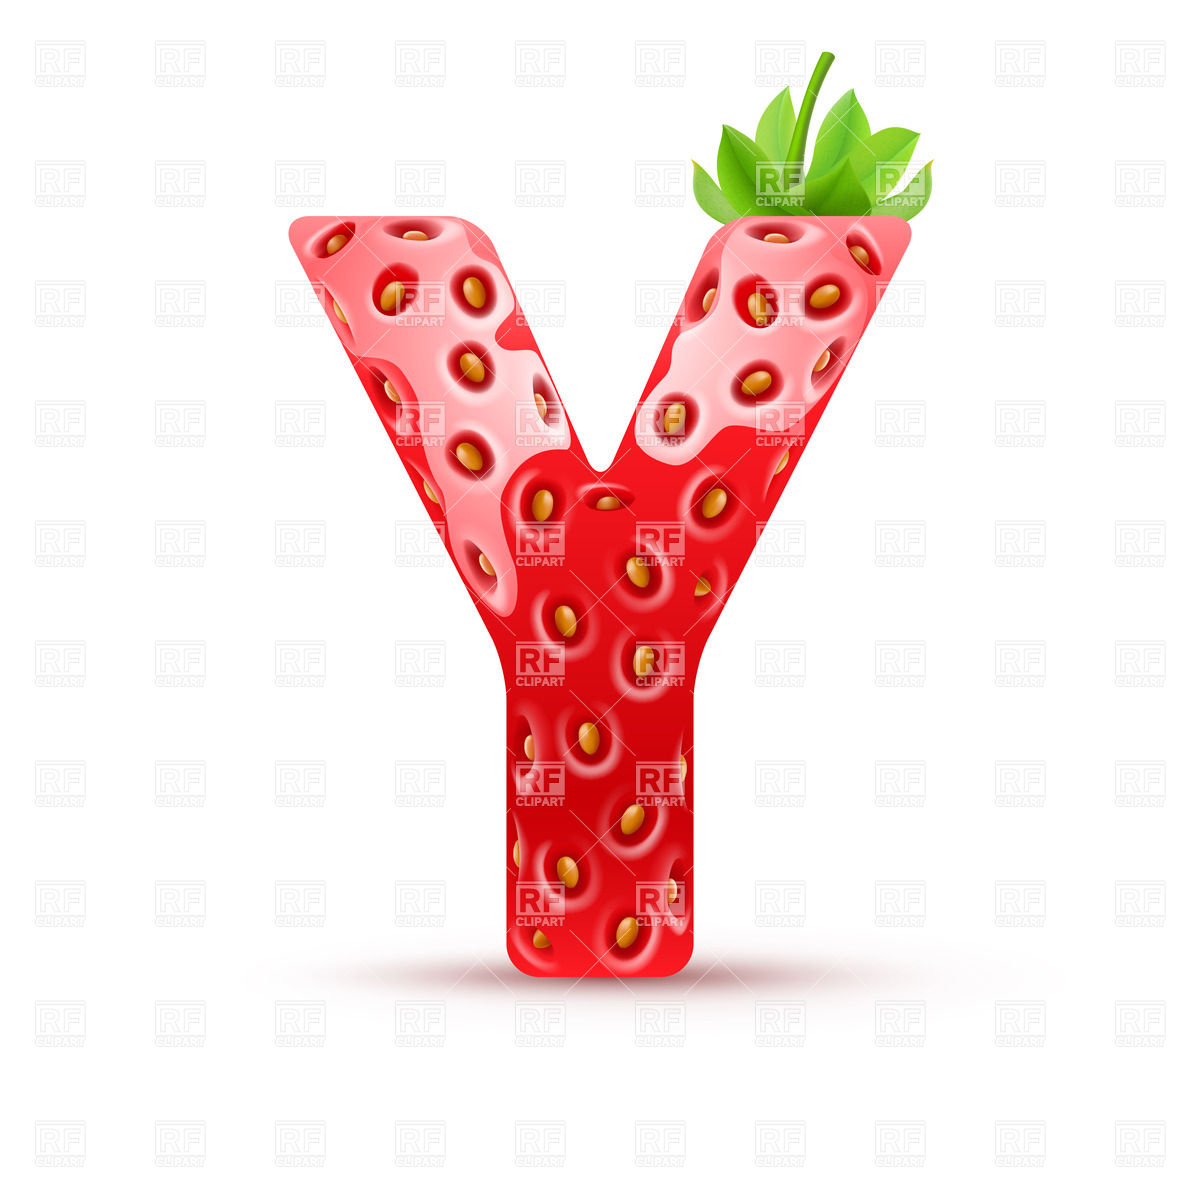 1200x1200 Letter Y In Strawberry Style With Green Leaves Vector Image